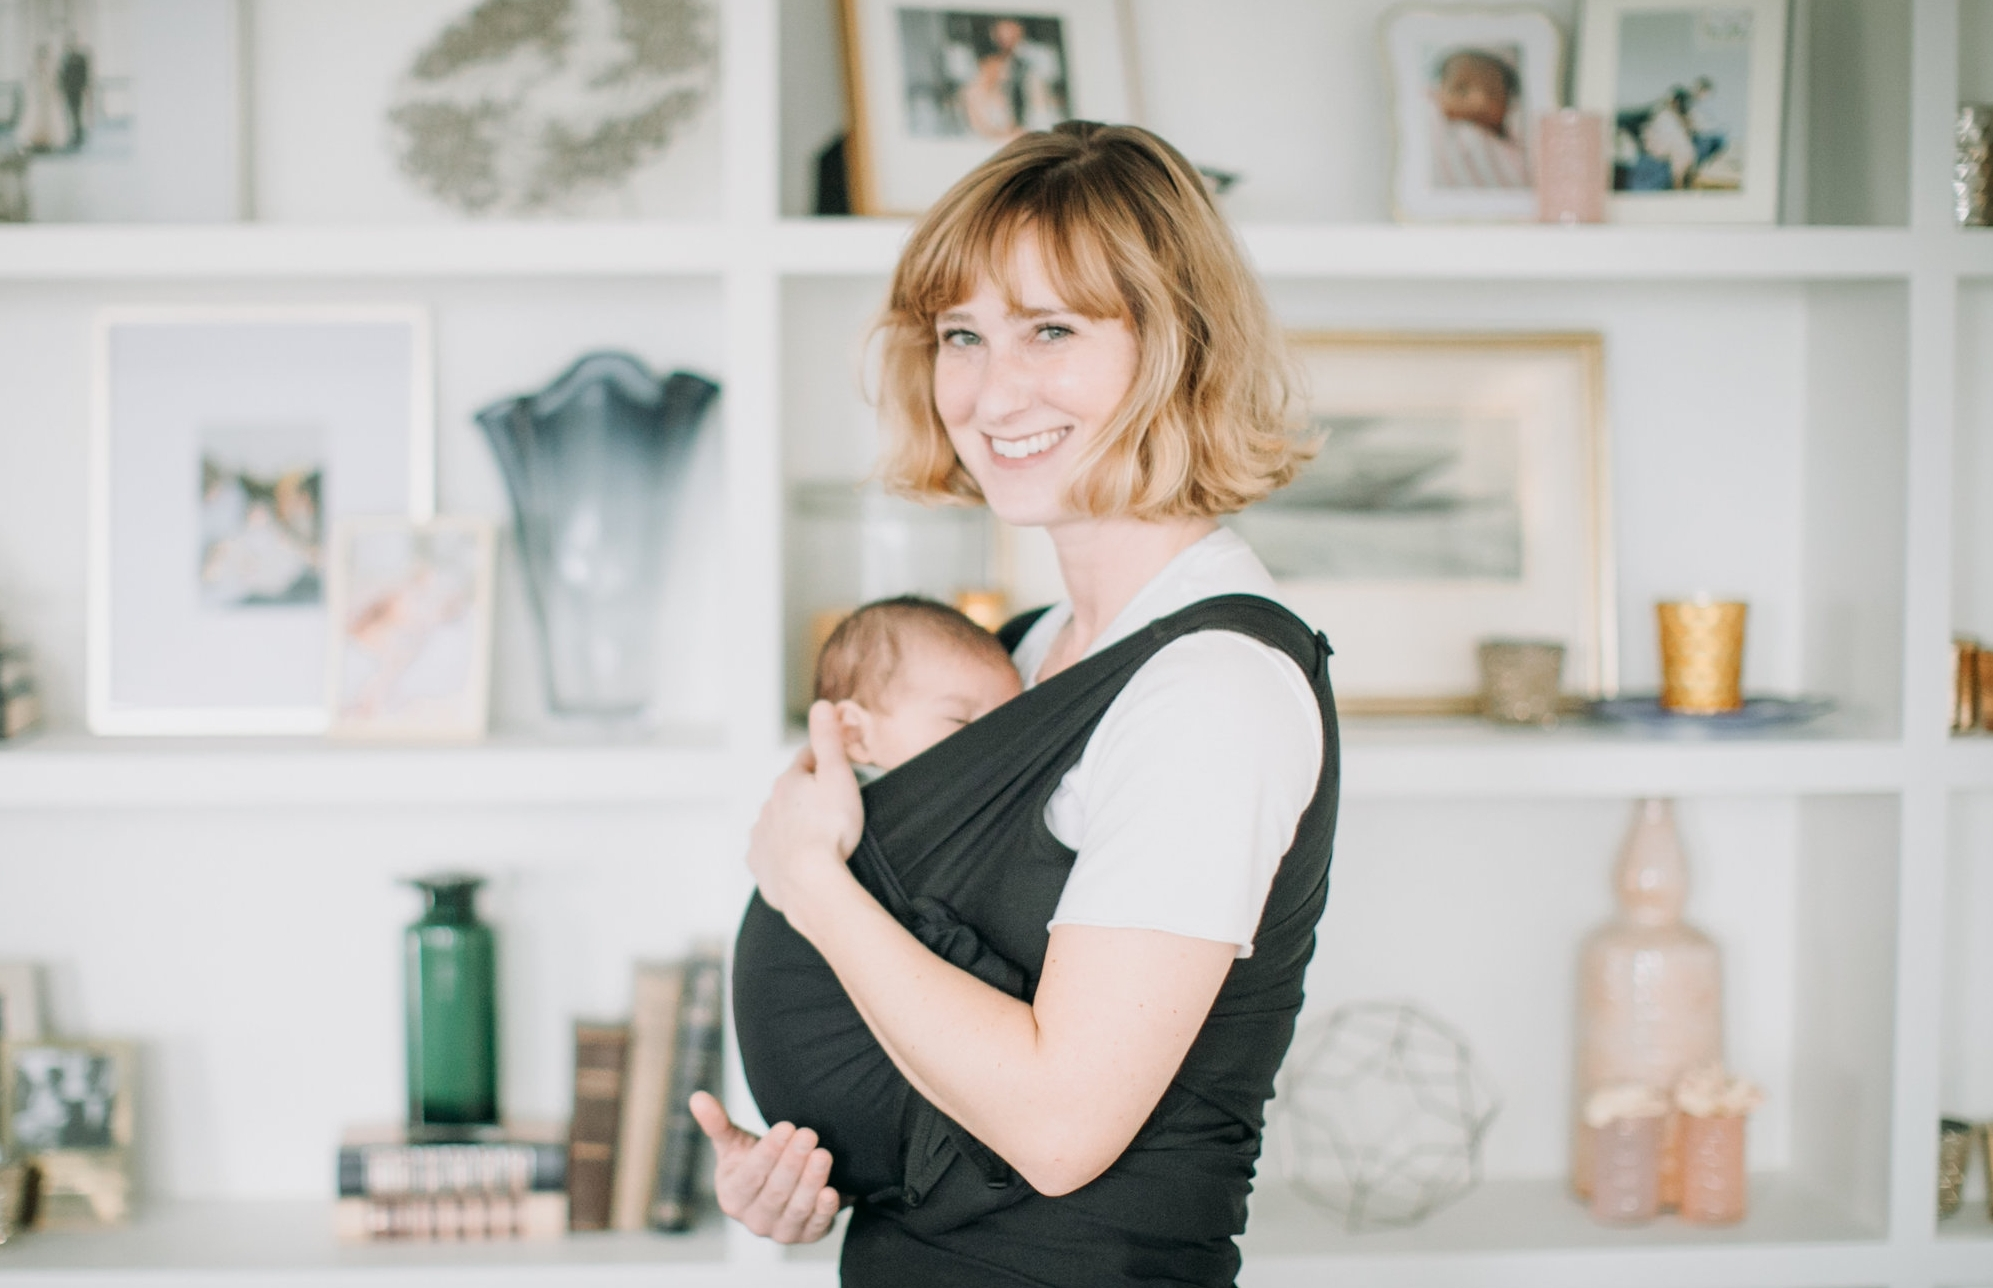 At Sound Babies, Aimee Strader offers Postpartum Doula care to families in Seattle as they transition from pregnancy to welcoming their baby home. -